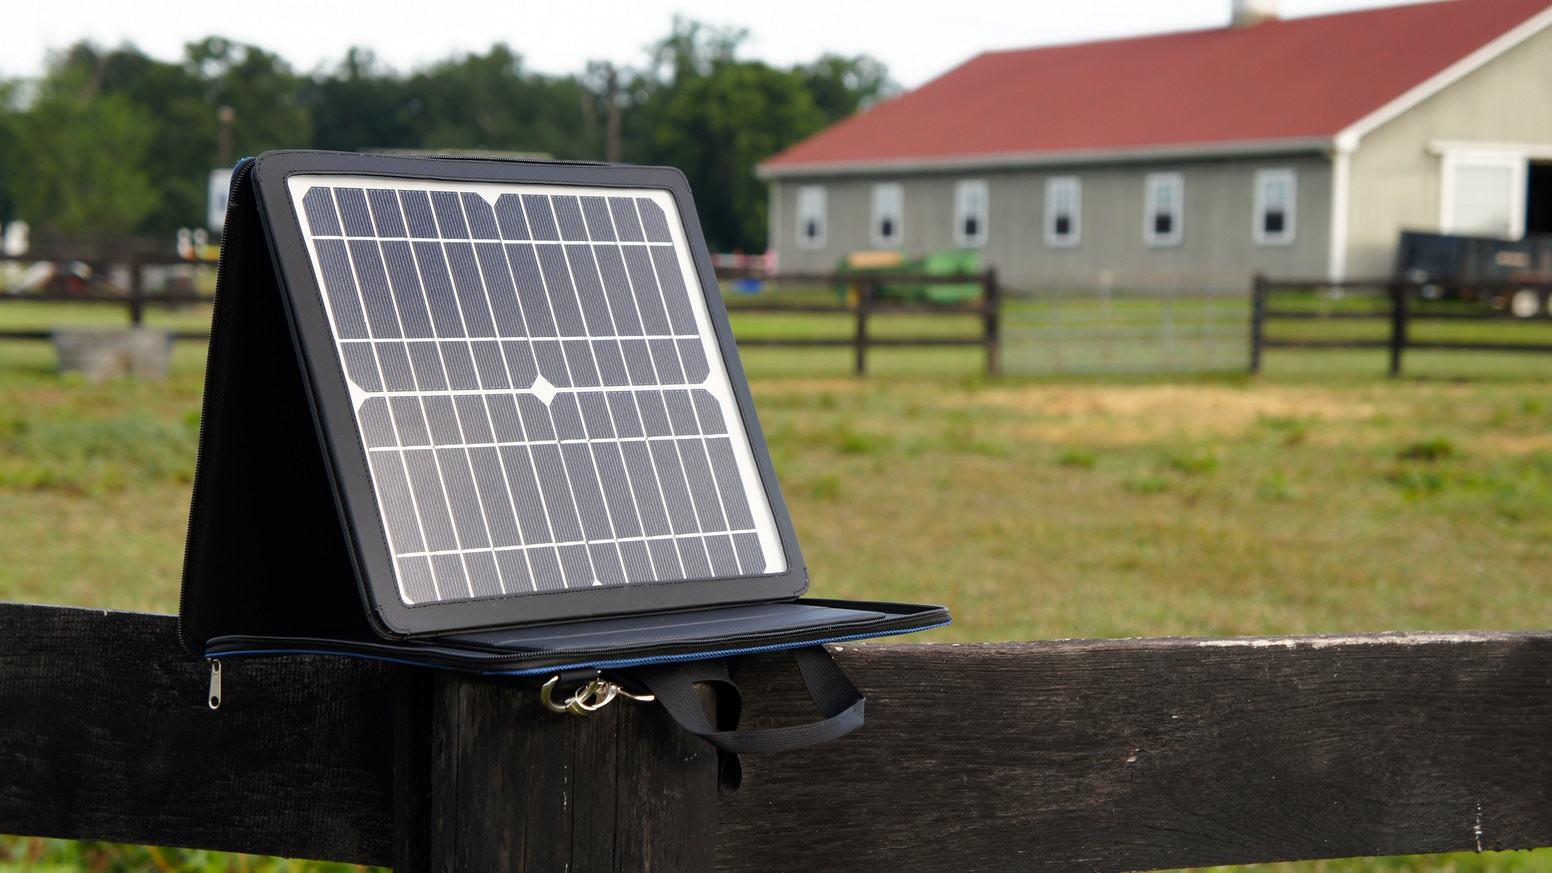 A high powered, portable solar power station that charges all your gadgets directly from the sun with outlet speeds.